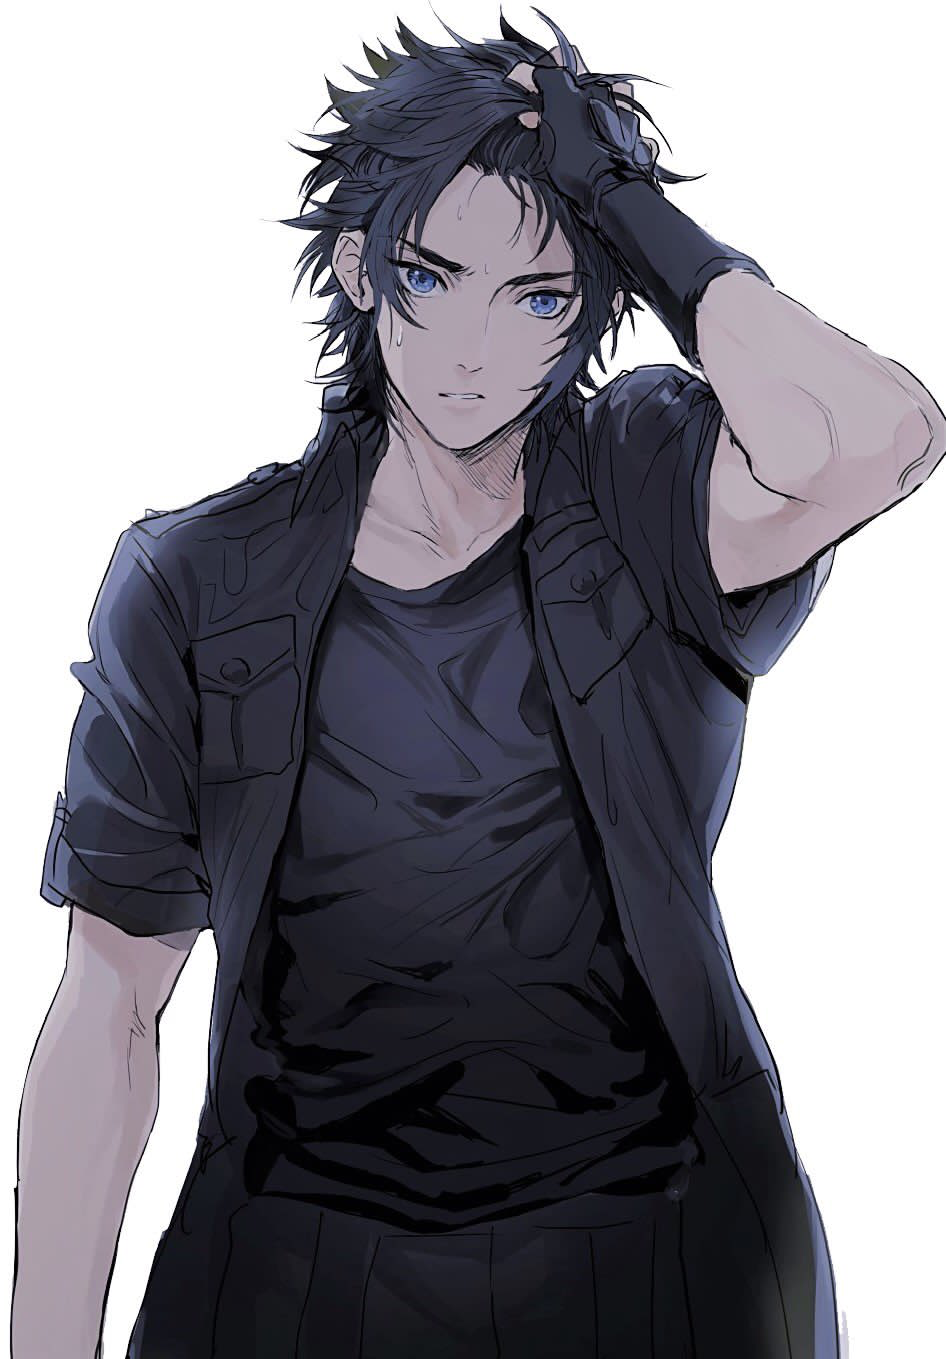 Anime Characters Male : Noctis from final fantasy male characters pinterest finals and anime